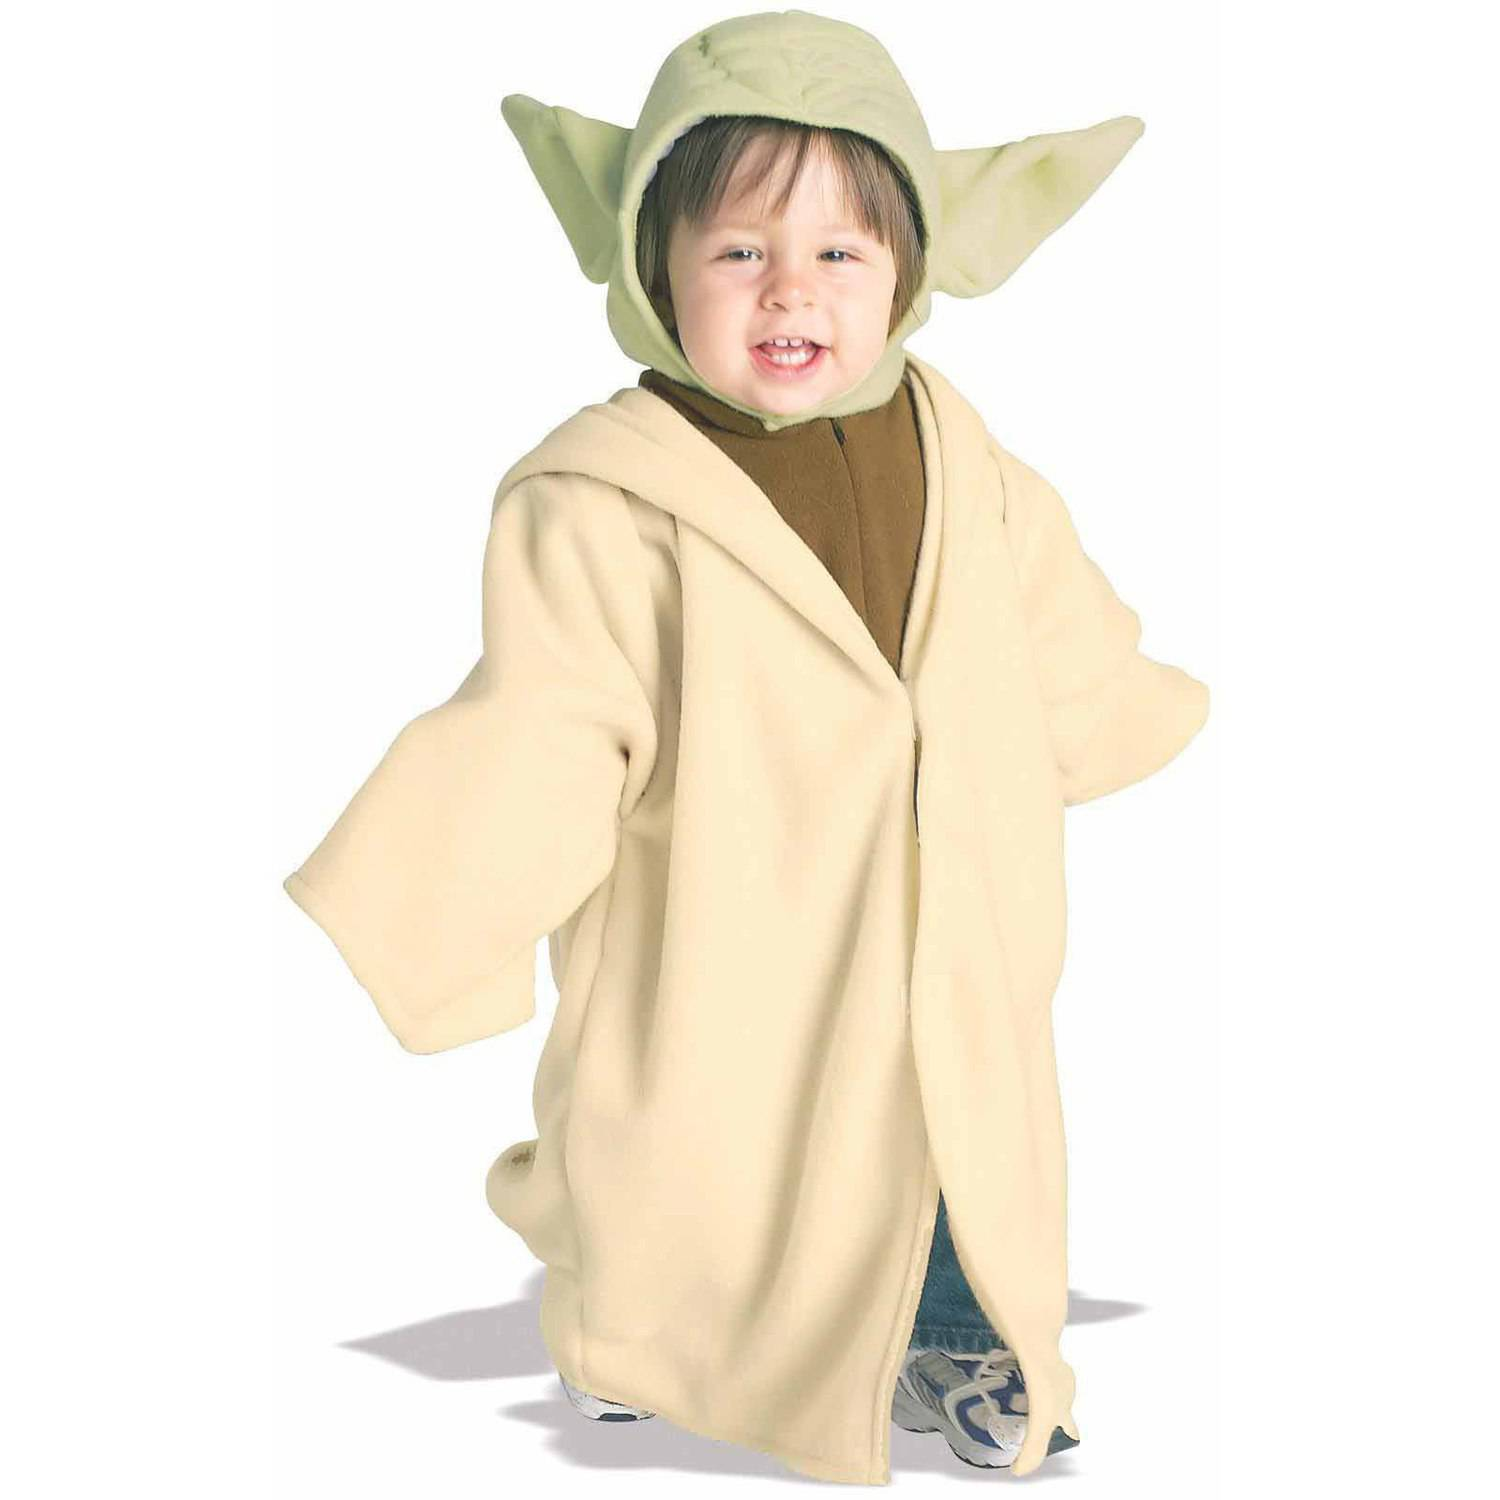 Star Wars Yoda Fleece Toddler Halloween Costume, Size 3T-4T